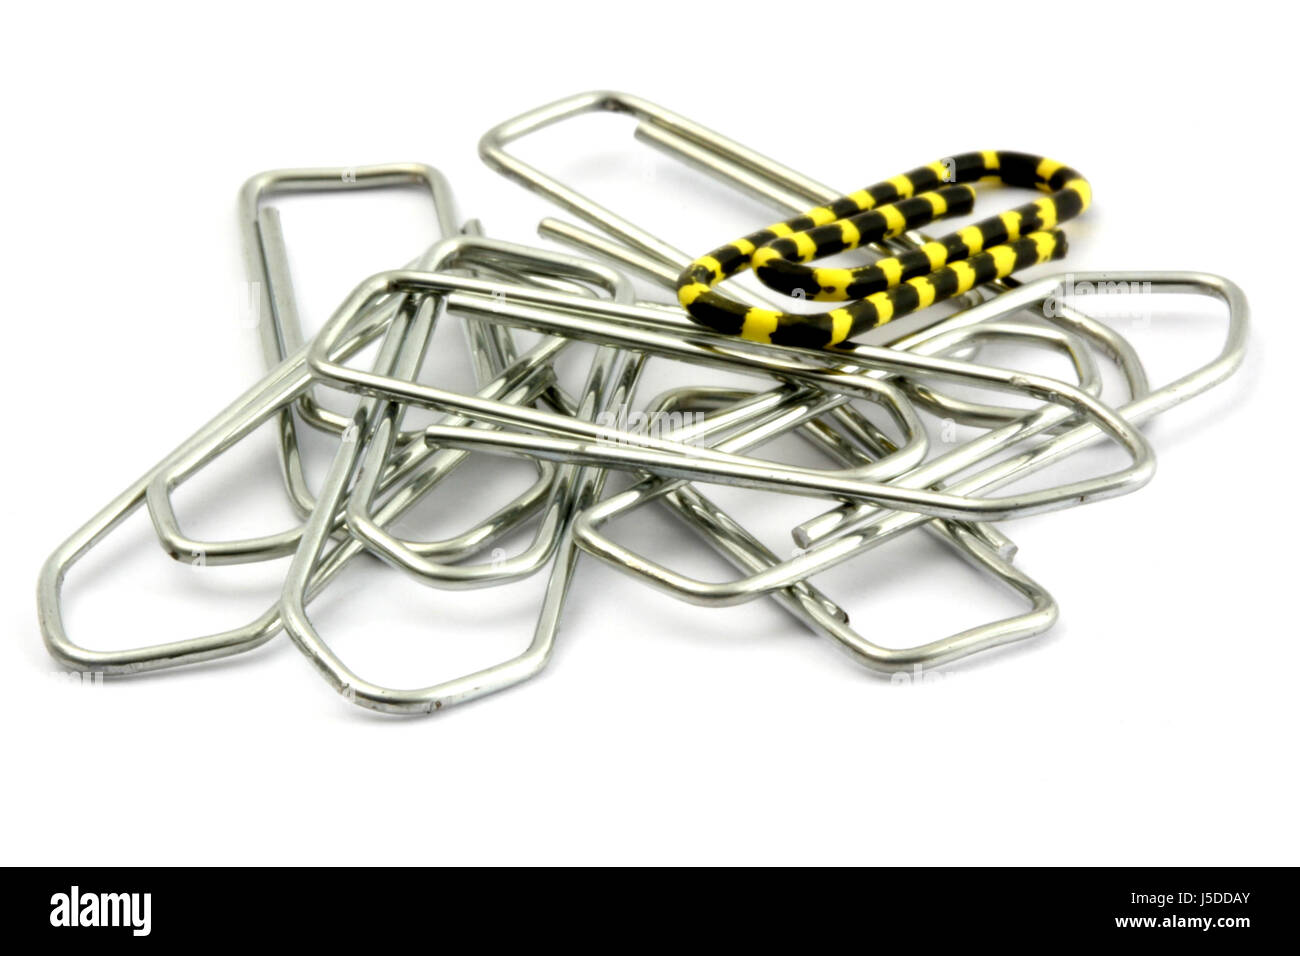 paperclips 23 - Stock Image